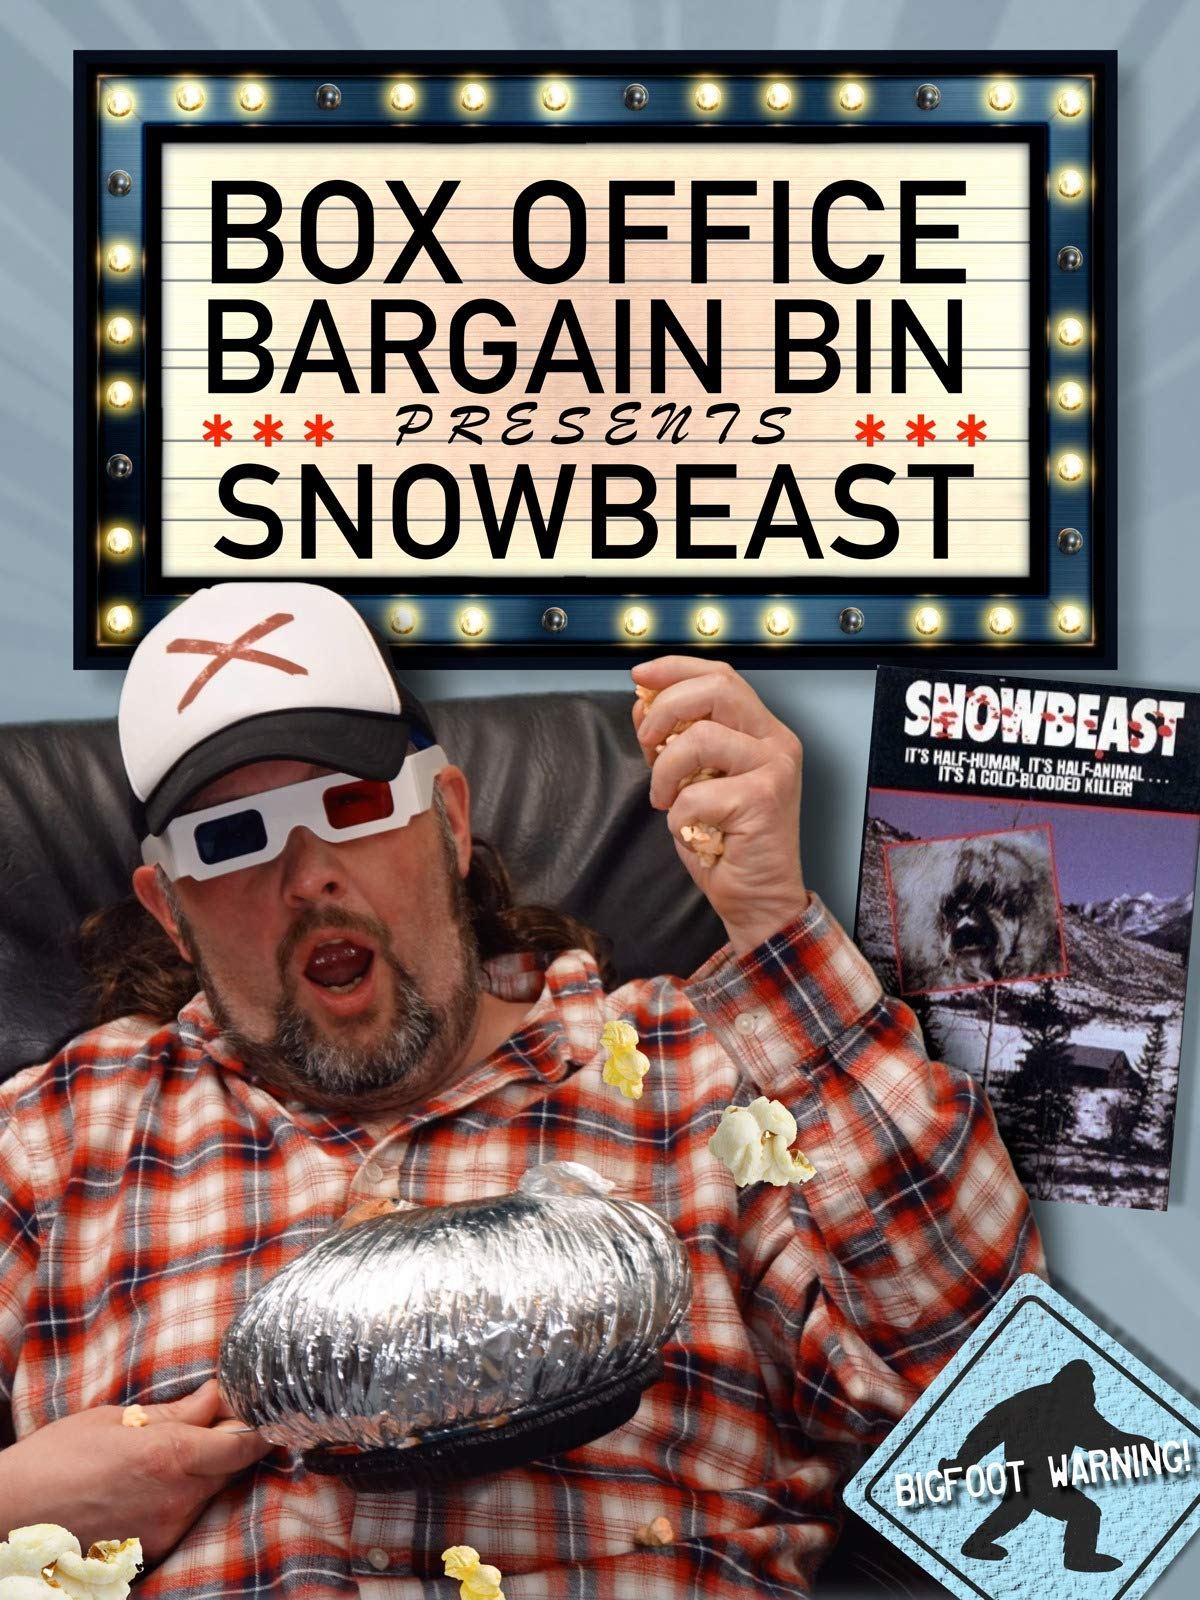 Box Office Bargain Bin Presents Snowbeast